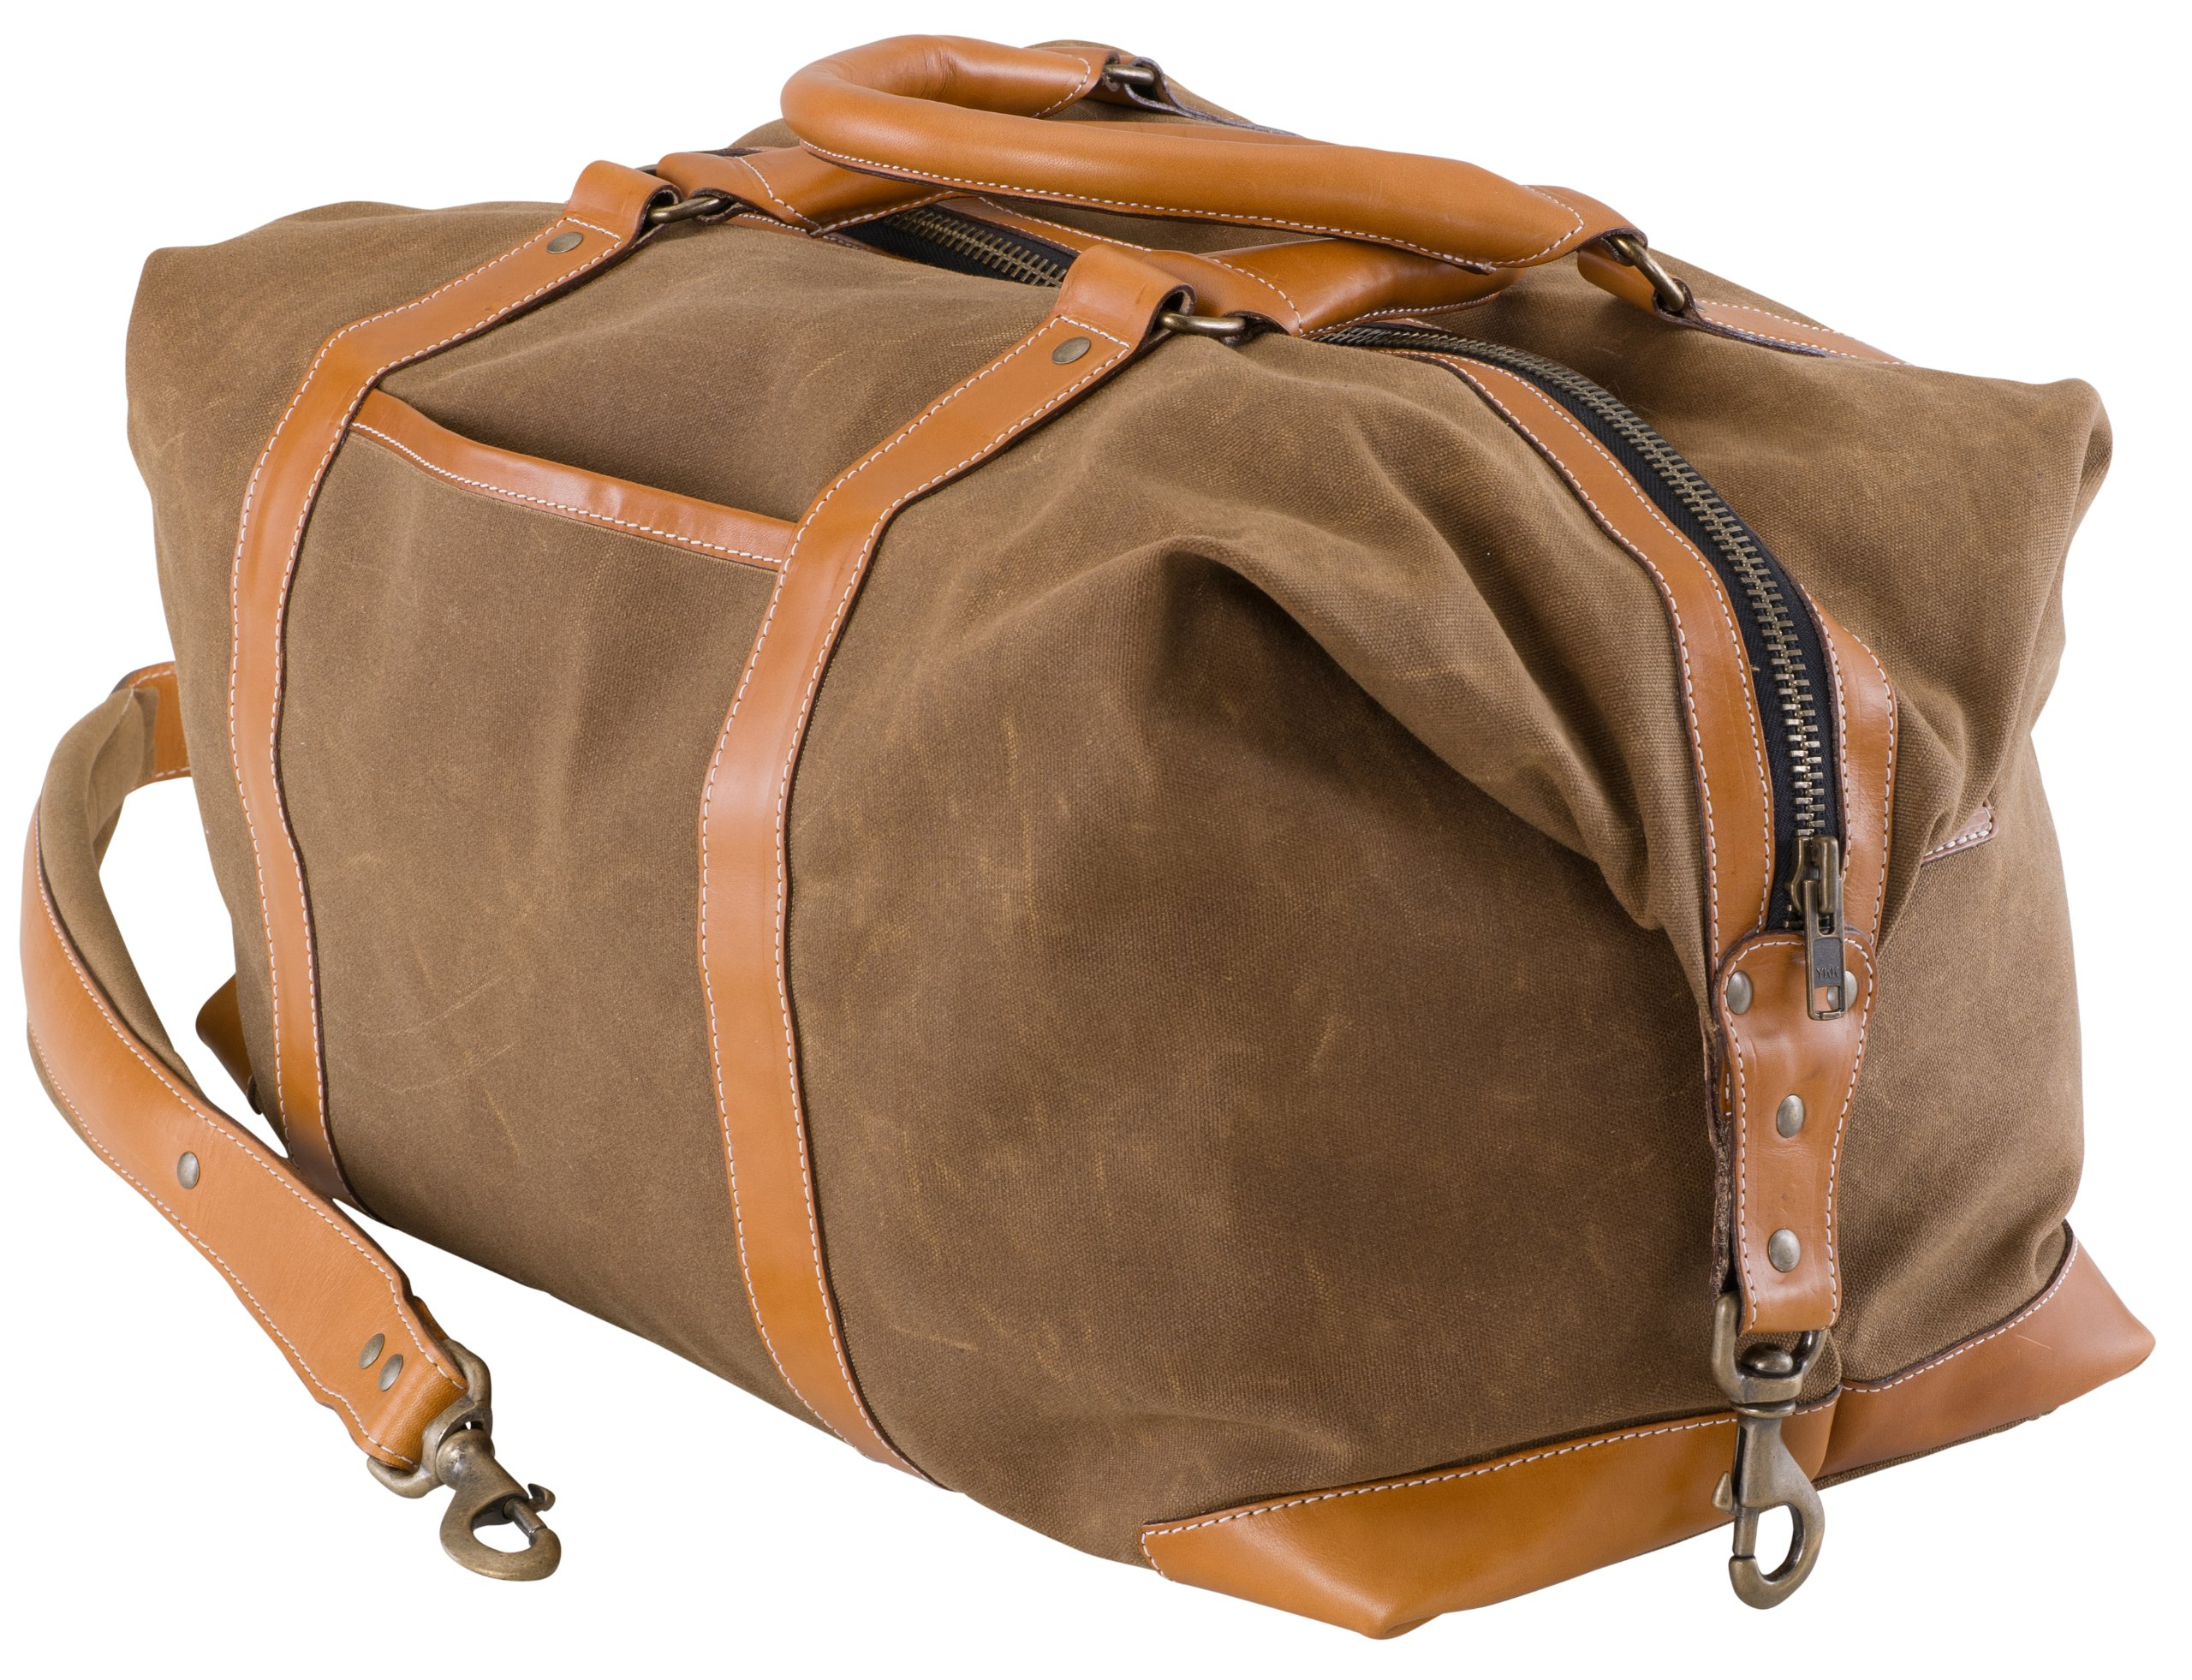 BELDING American Collection Satchel Duffle Bag, Tan by BELDING (Image #3)